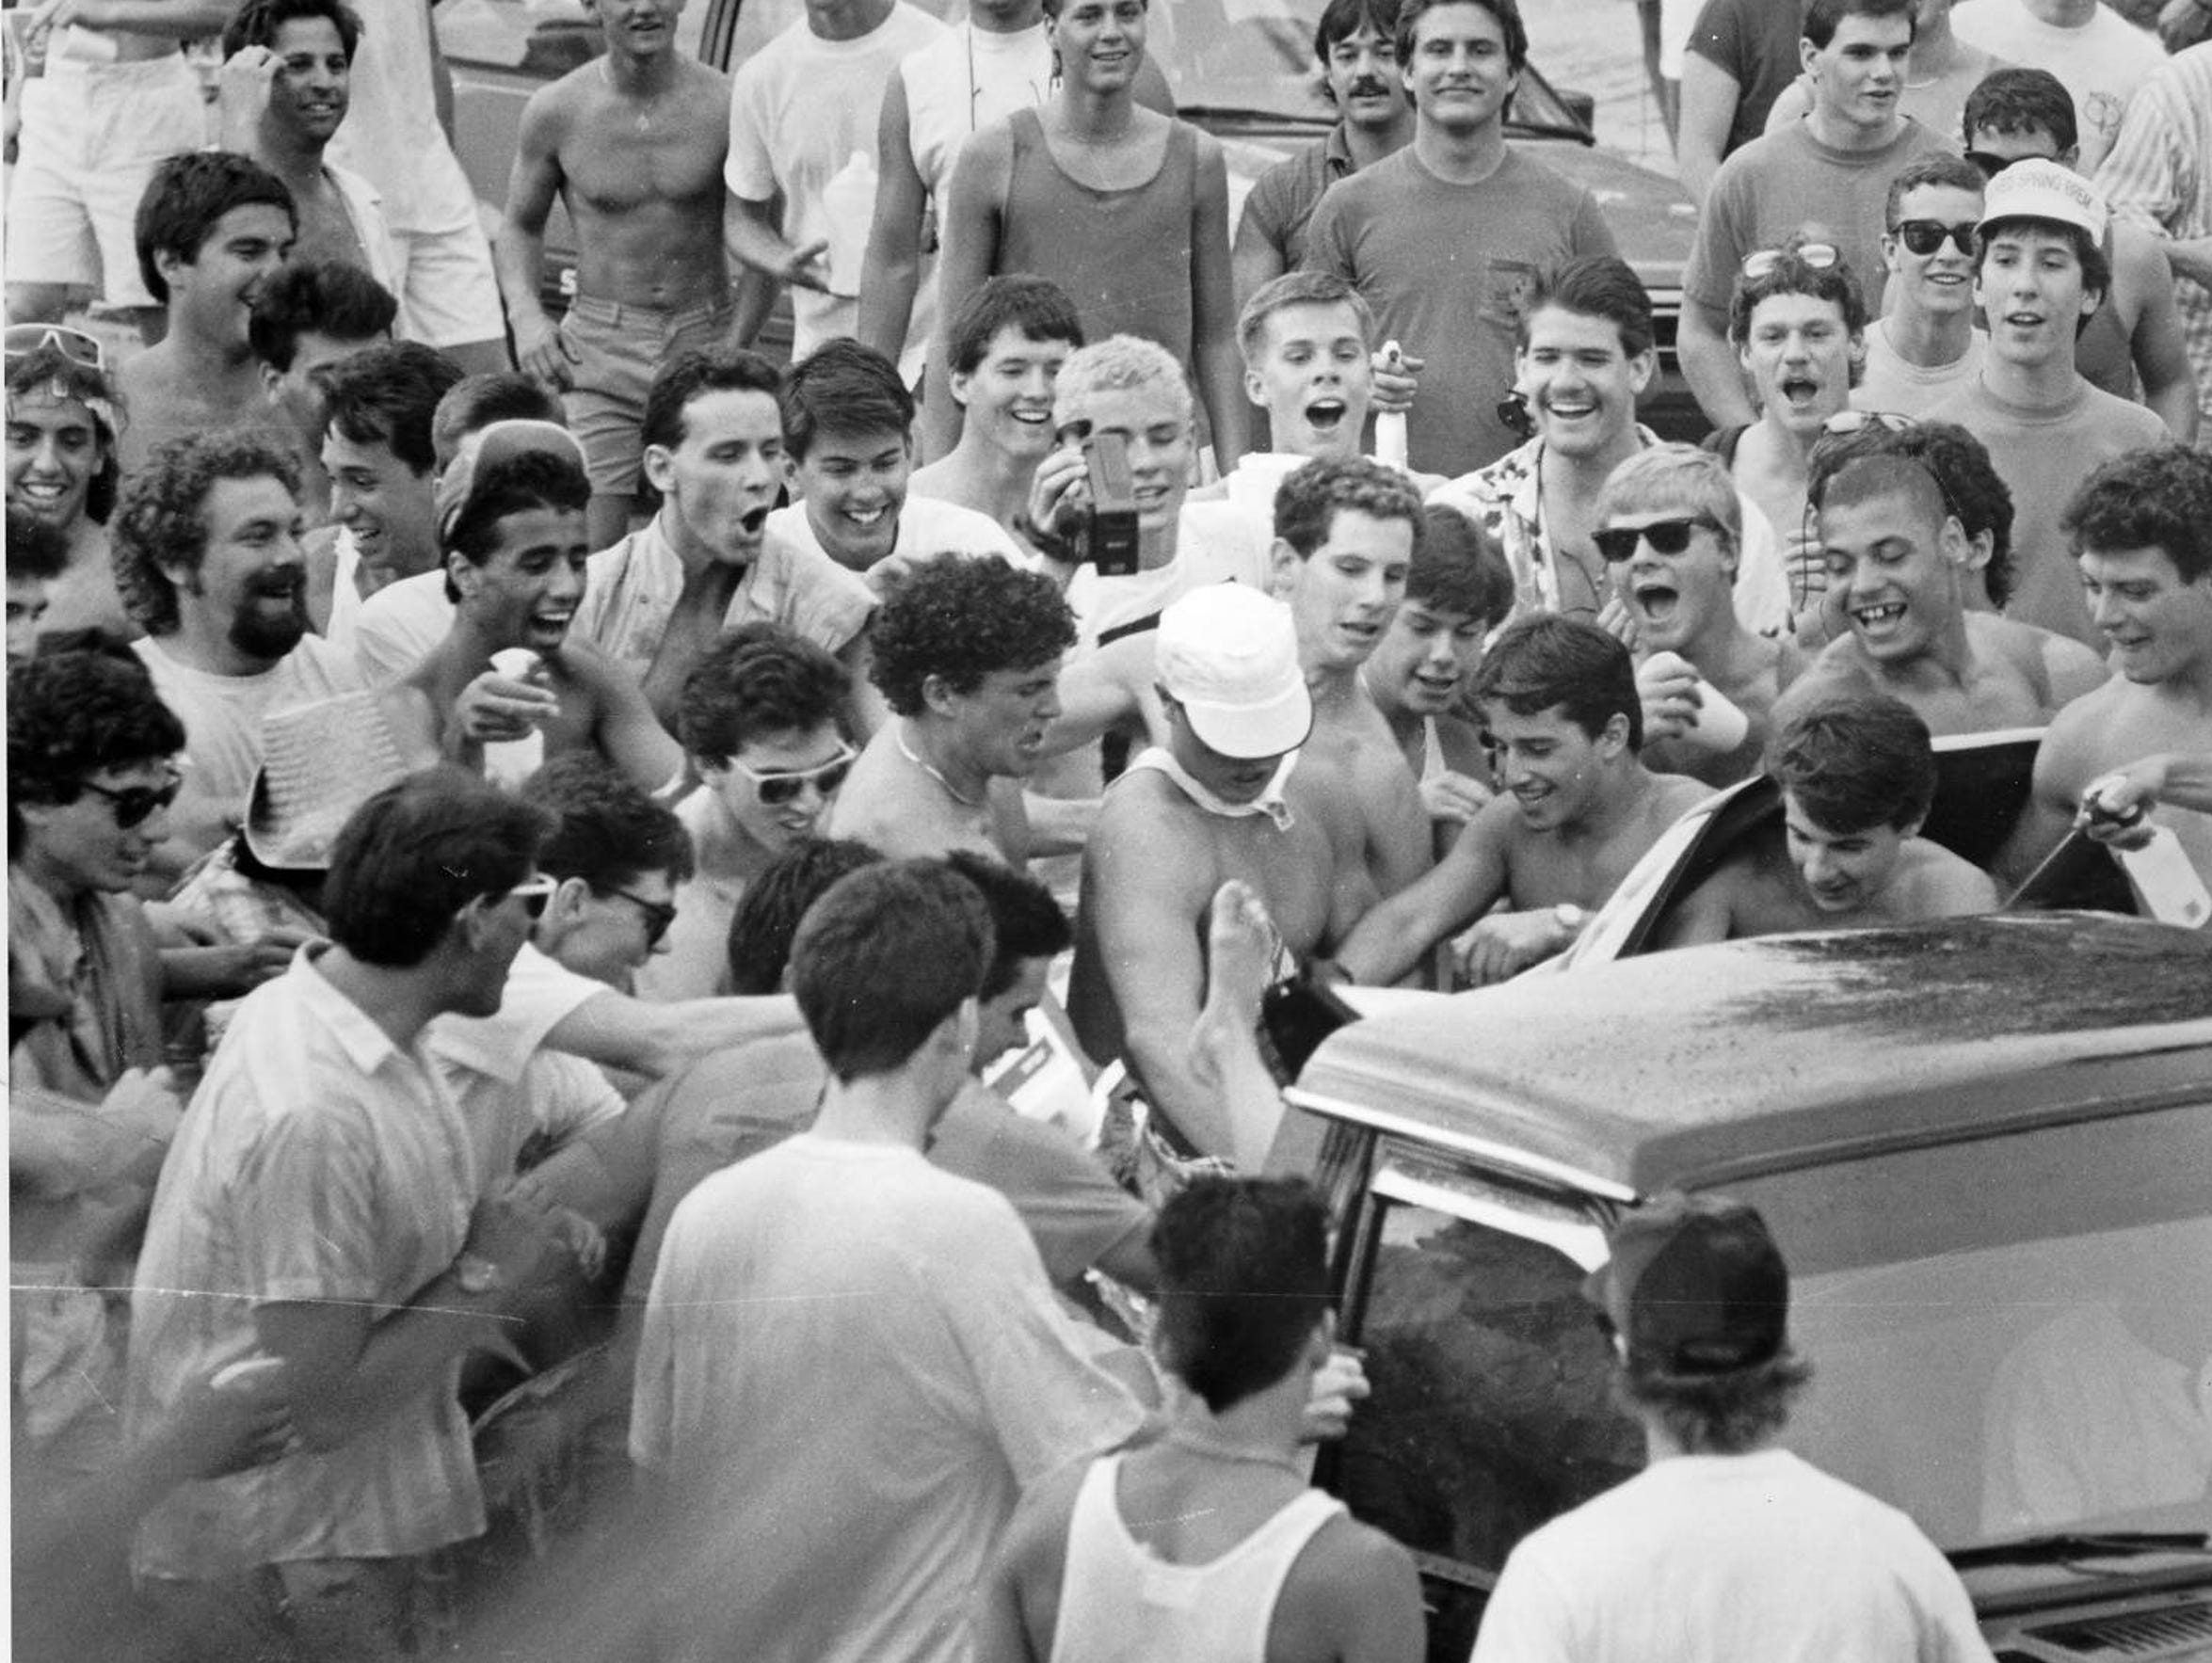 In 1986, A Spring Break Riot Changed Palm Springs